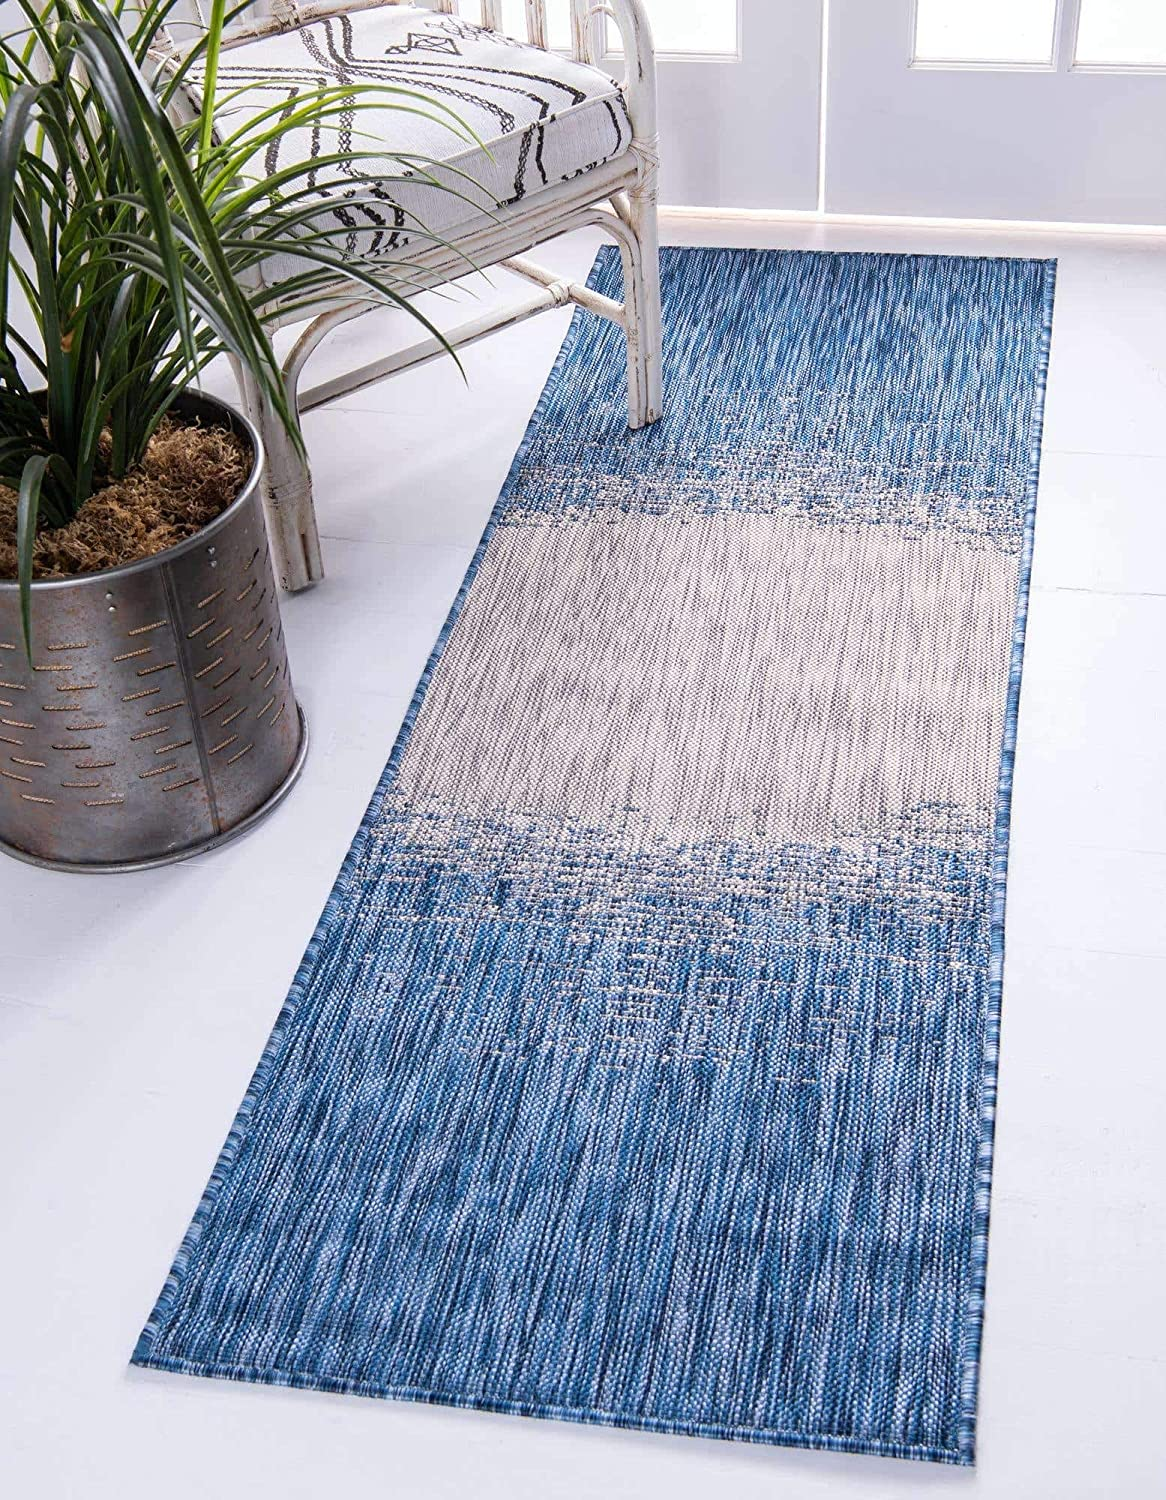 Unique Loom Modern Collection Transitional Gradient I Las Vegas Mall Distressed Outlet sale feature